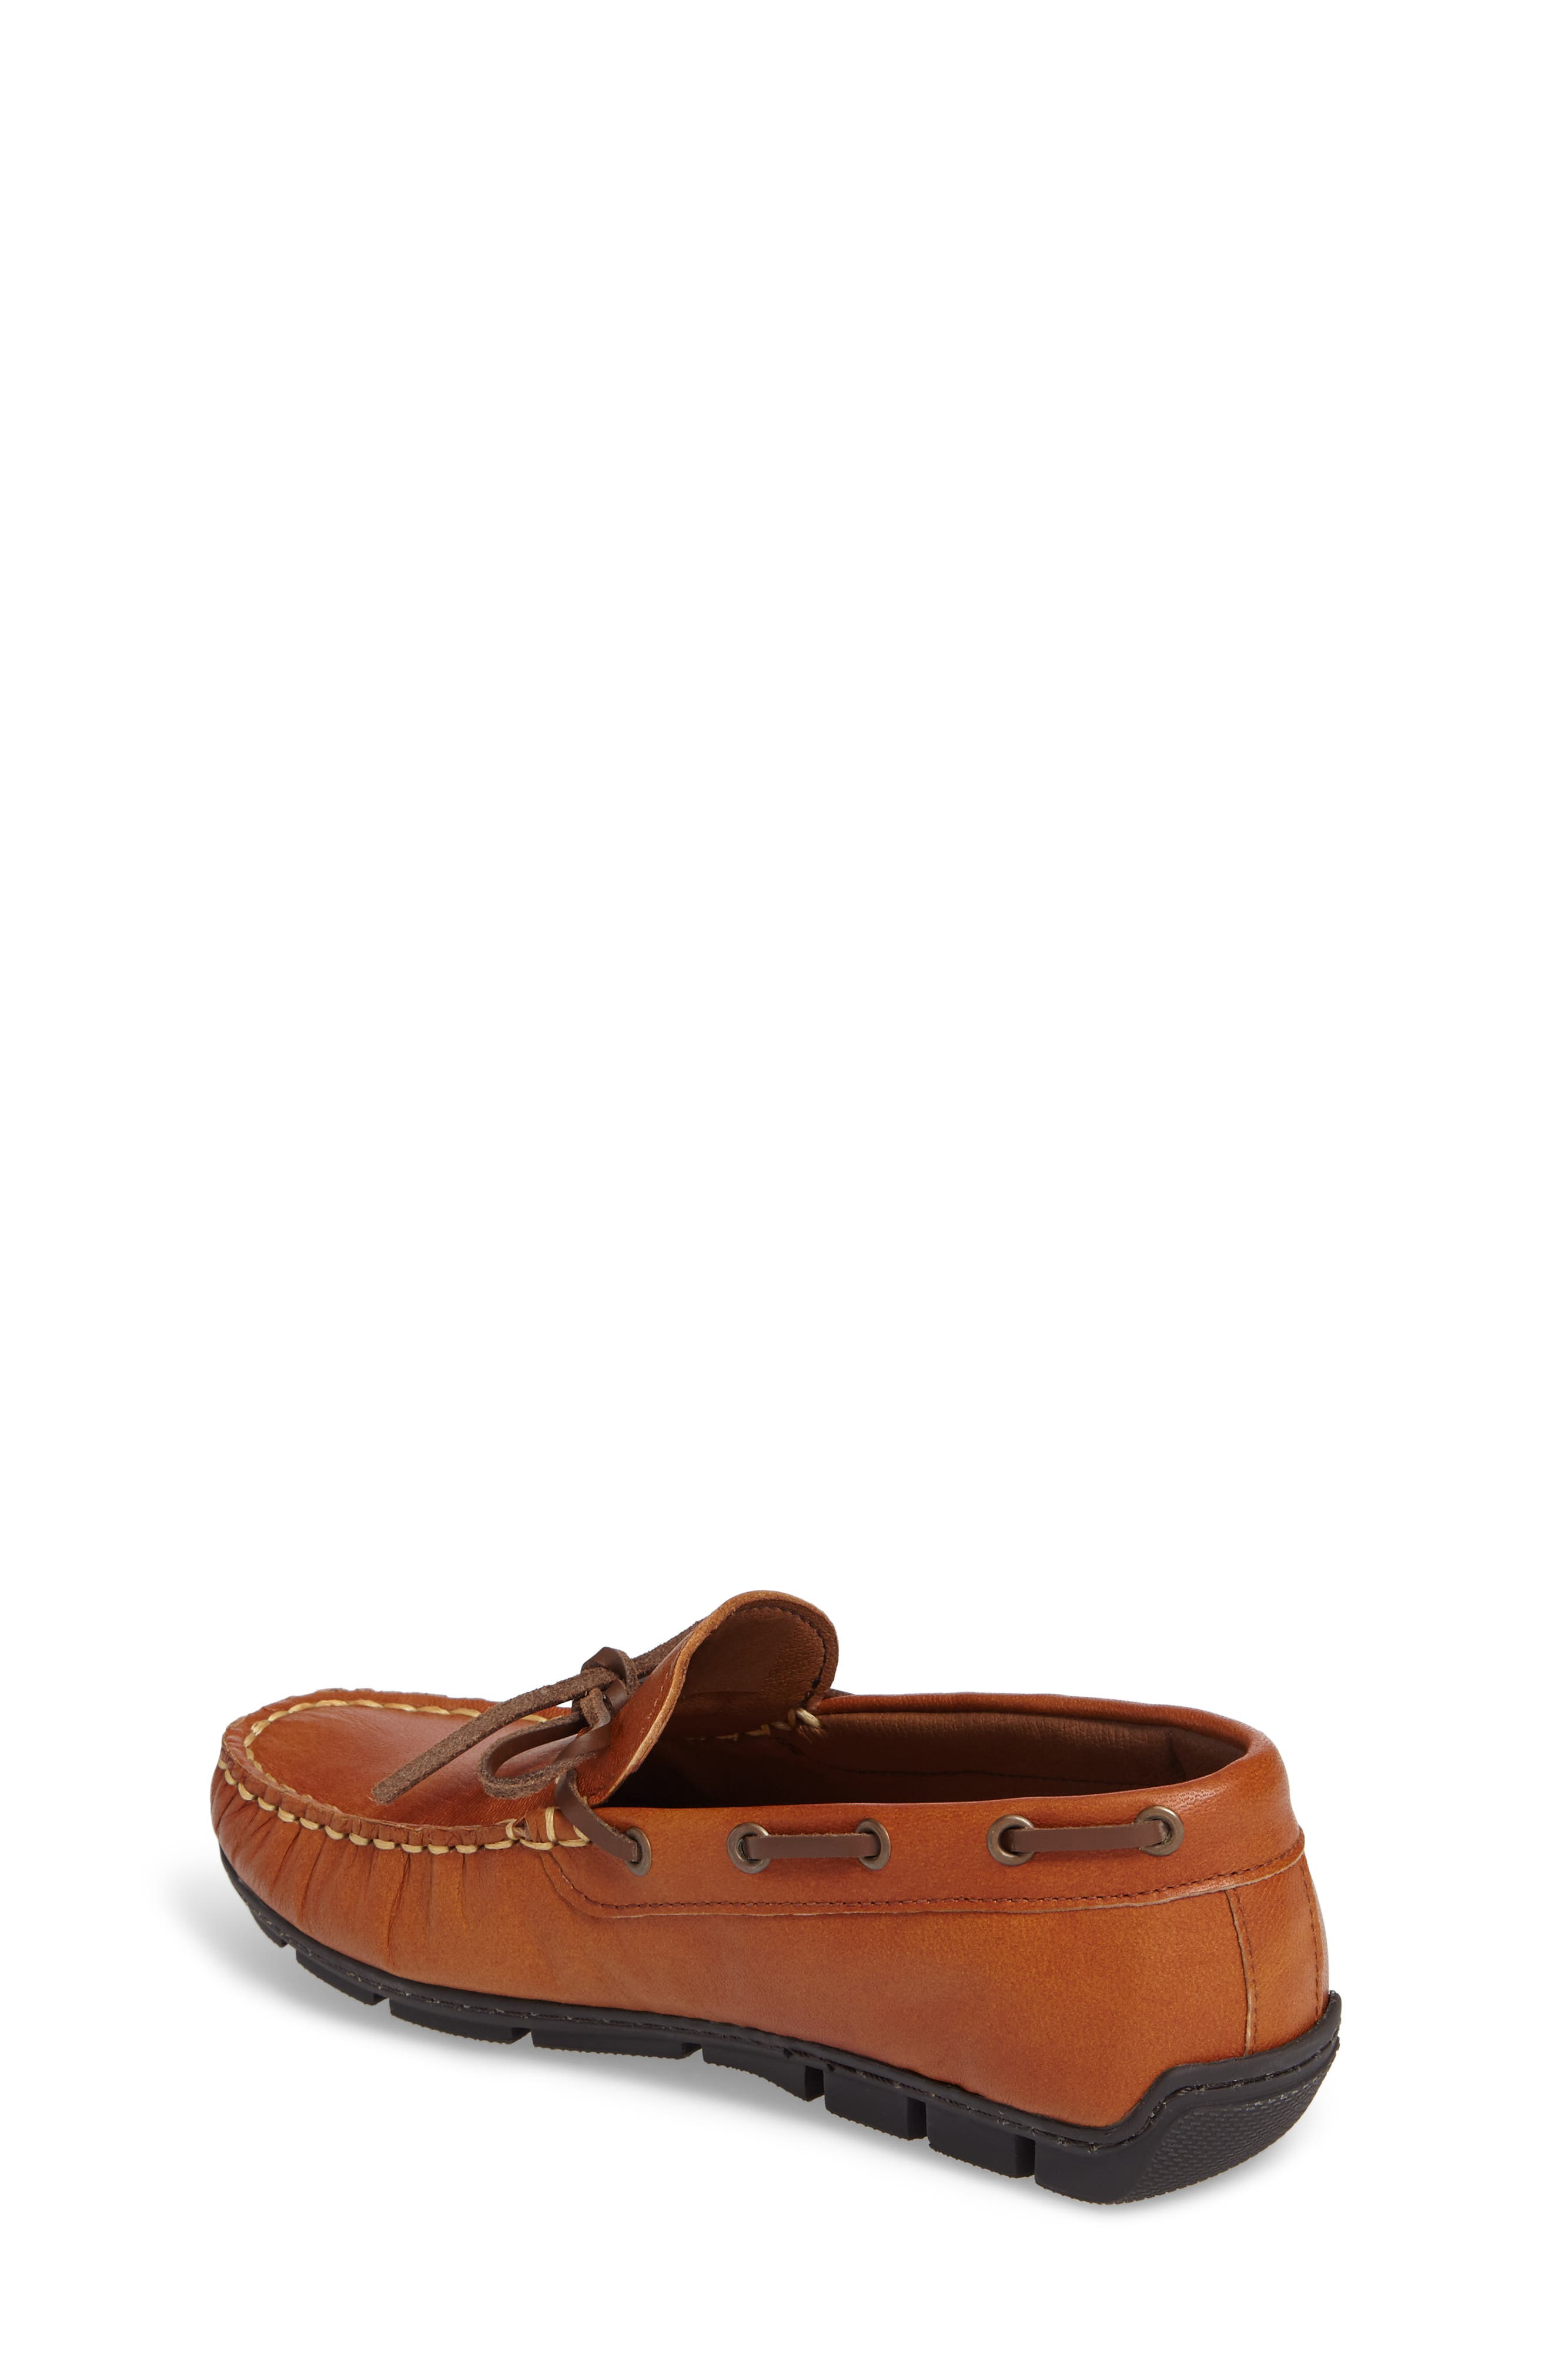 Doile Loafer,                             Alternate thumbnail 2, color,                             Naturale Leather